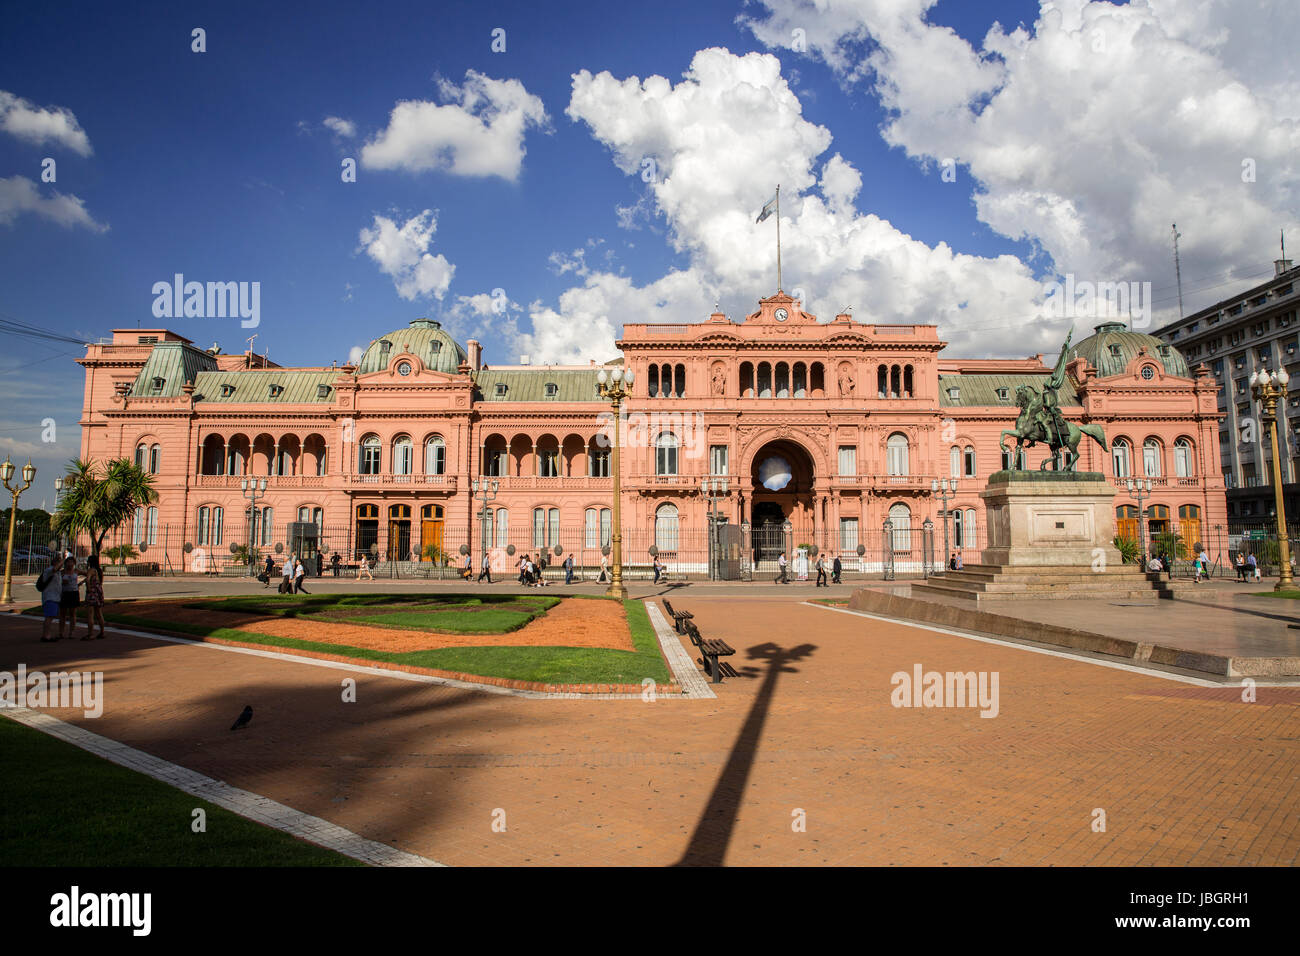 Presidental Palace where Evita Parone gave her famous speech in Buenos Aires, Argentina - Stock Image